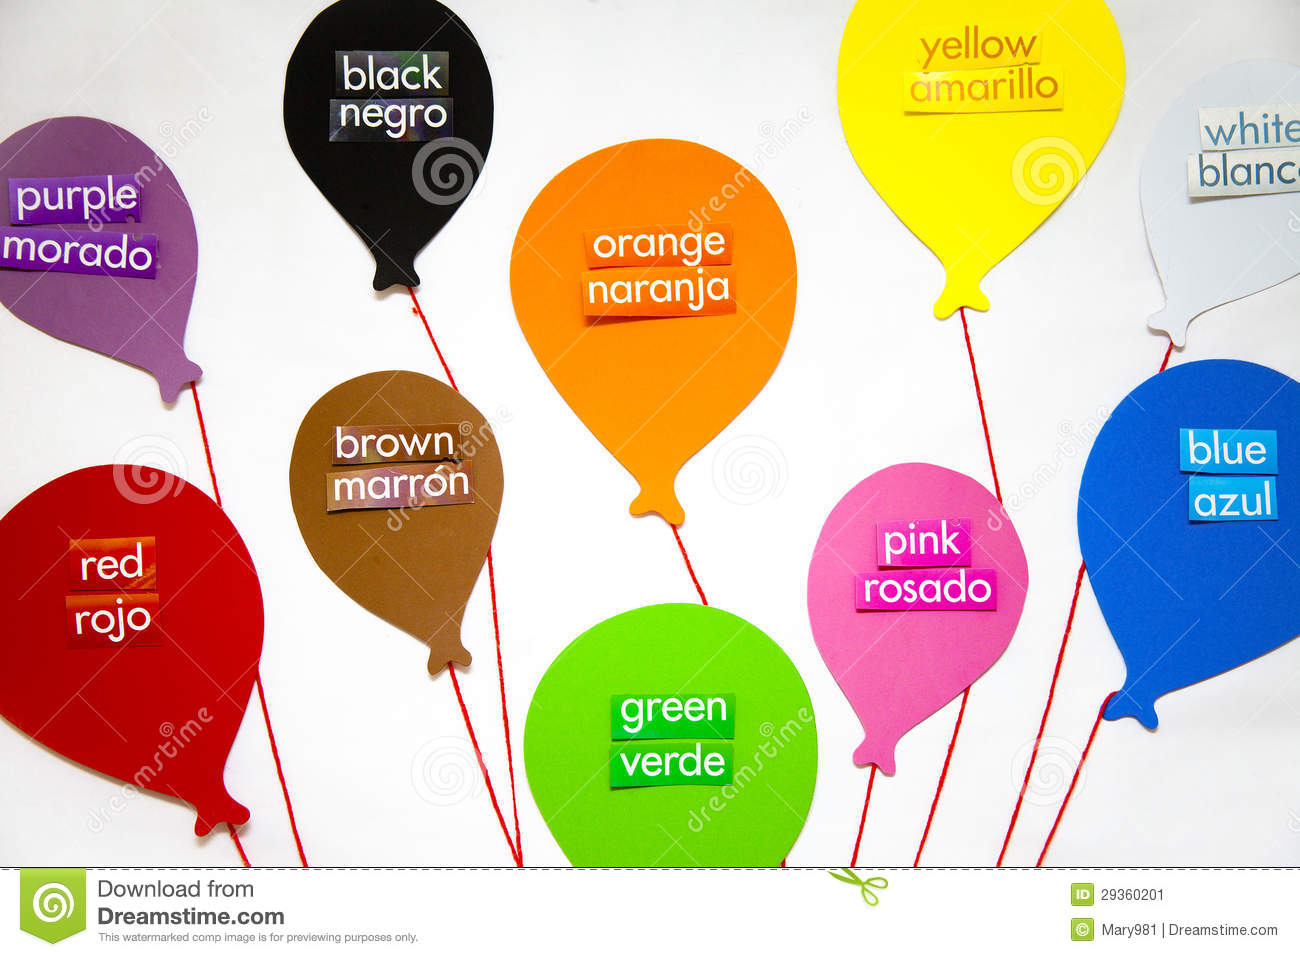 The English and Spanish words for each color labels a balloon for each ...